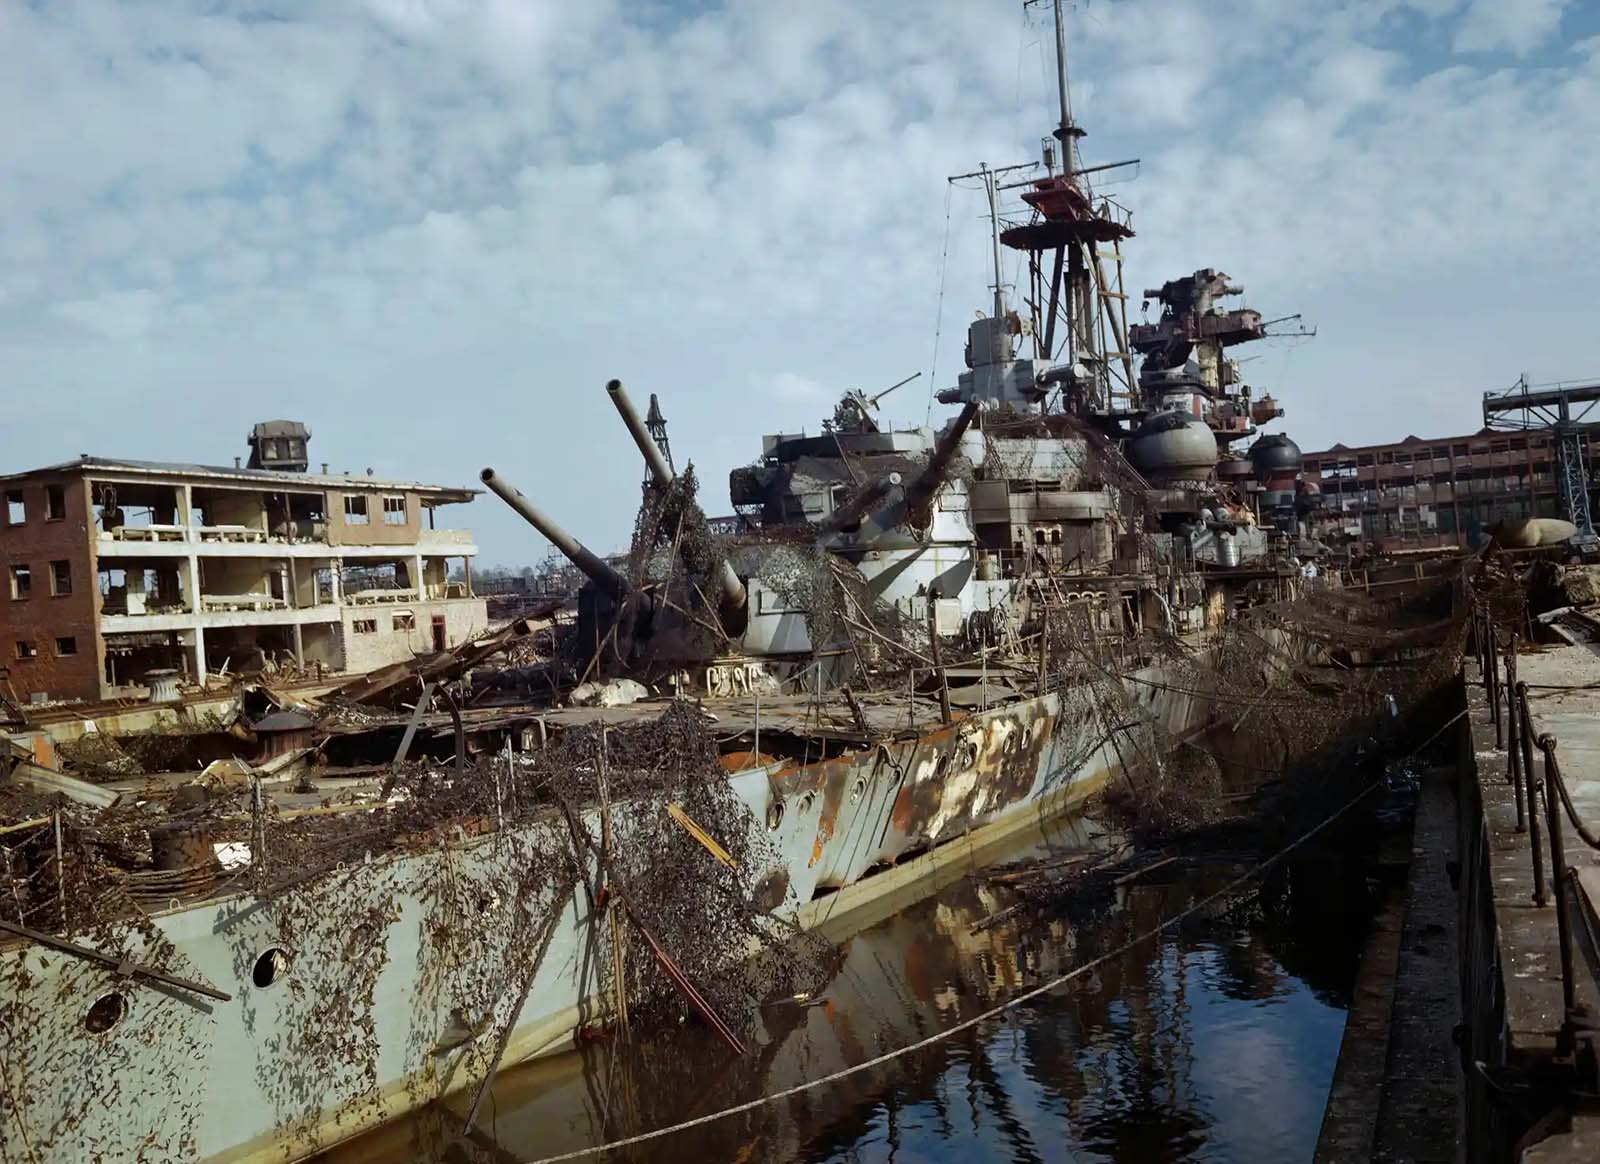 The German heavy cruiser Admiral Hipper abandoned in dry dock at Kiel, Germany, May 1945.